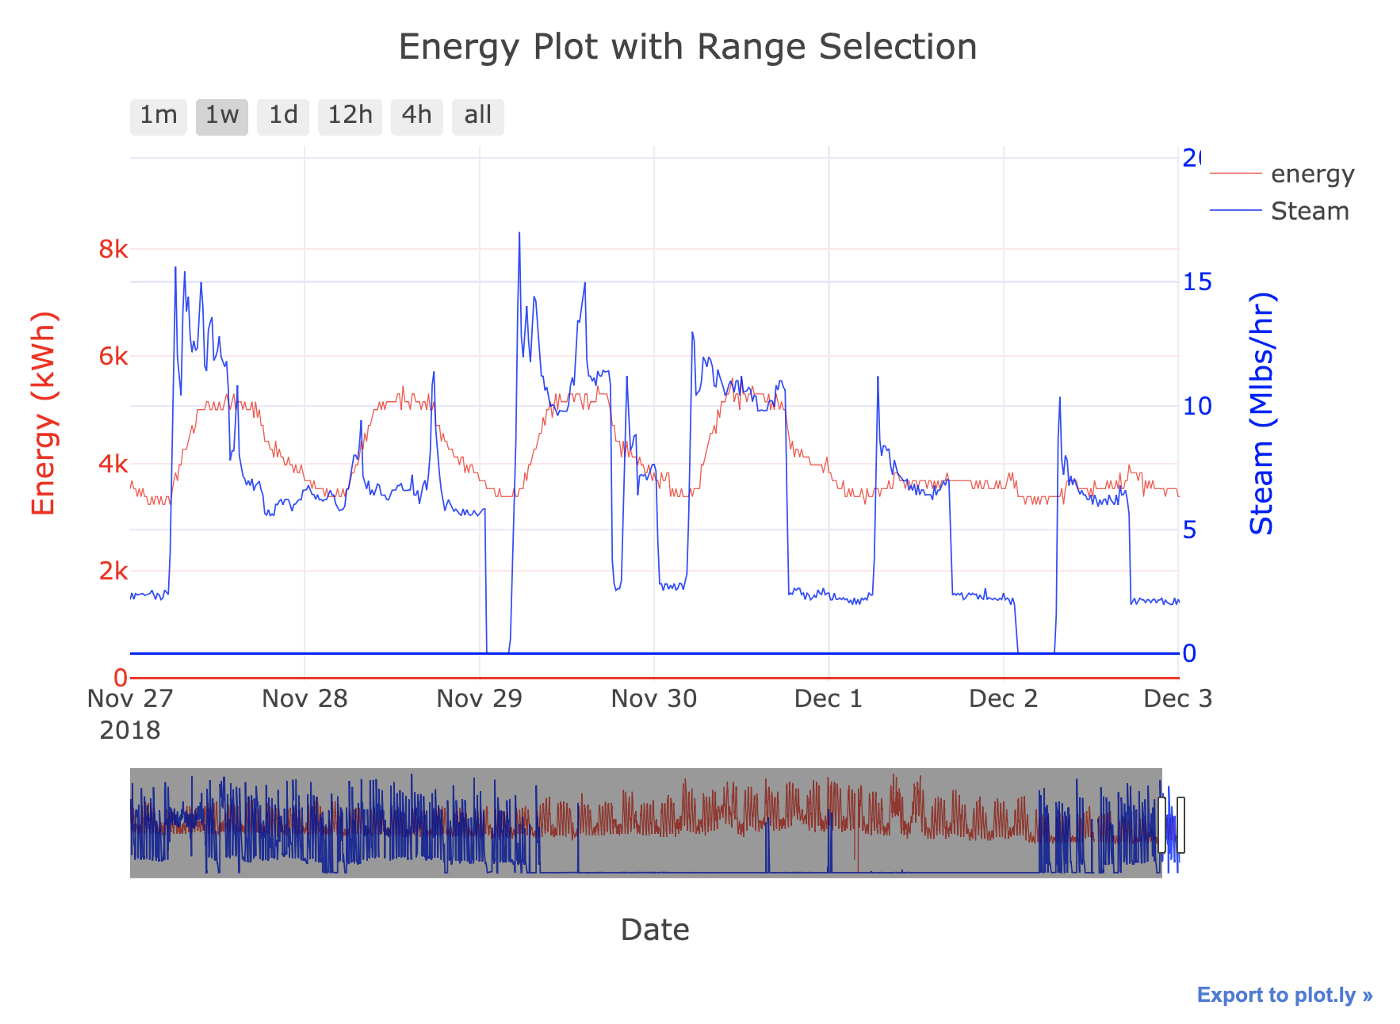 Introduction to Interactive Time Series Visualizations with Plotly